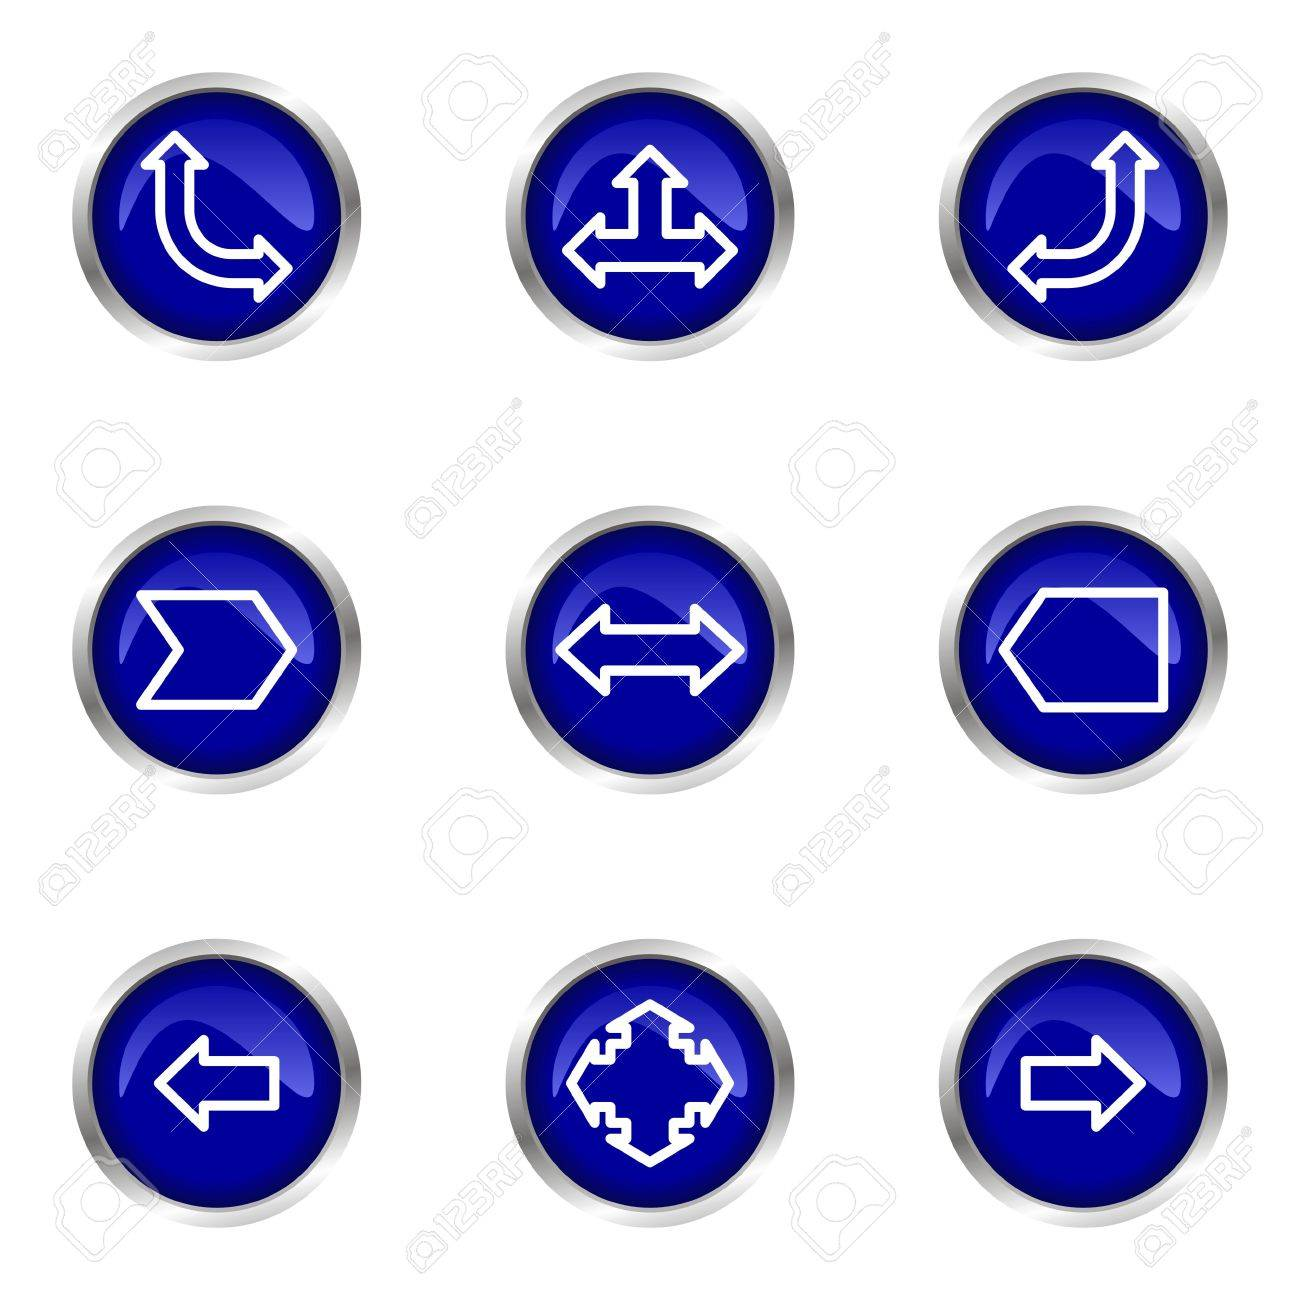 Set of 9 glossy web icons (set 12). Blue circle with reflection. Stock Vector - 15320655